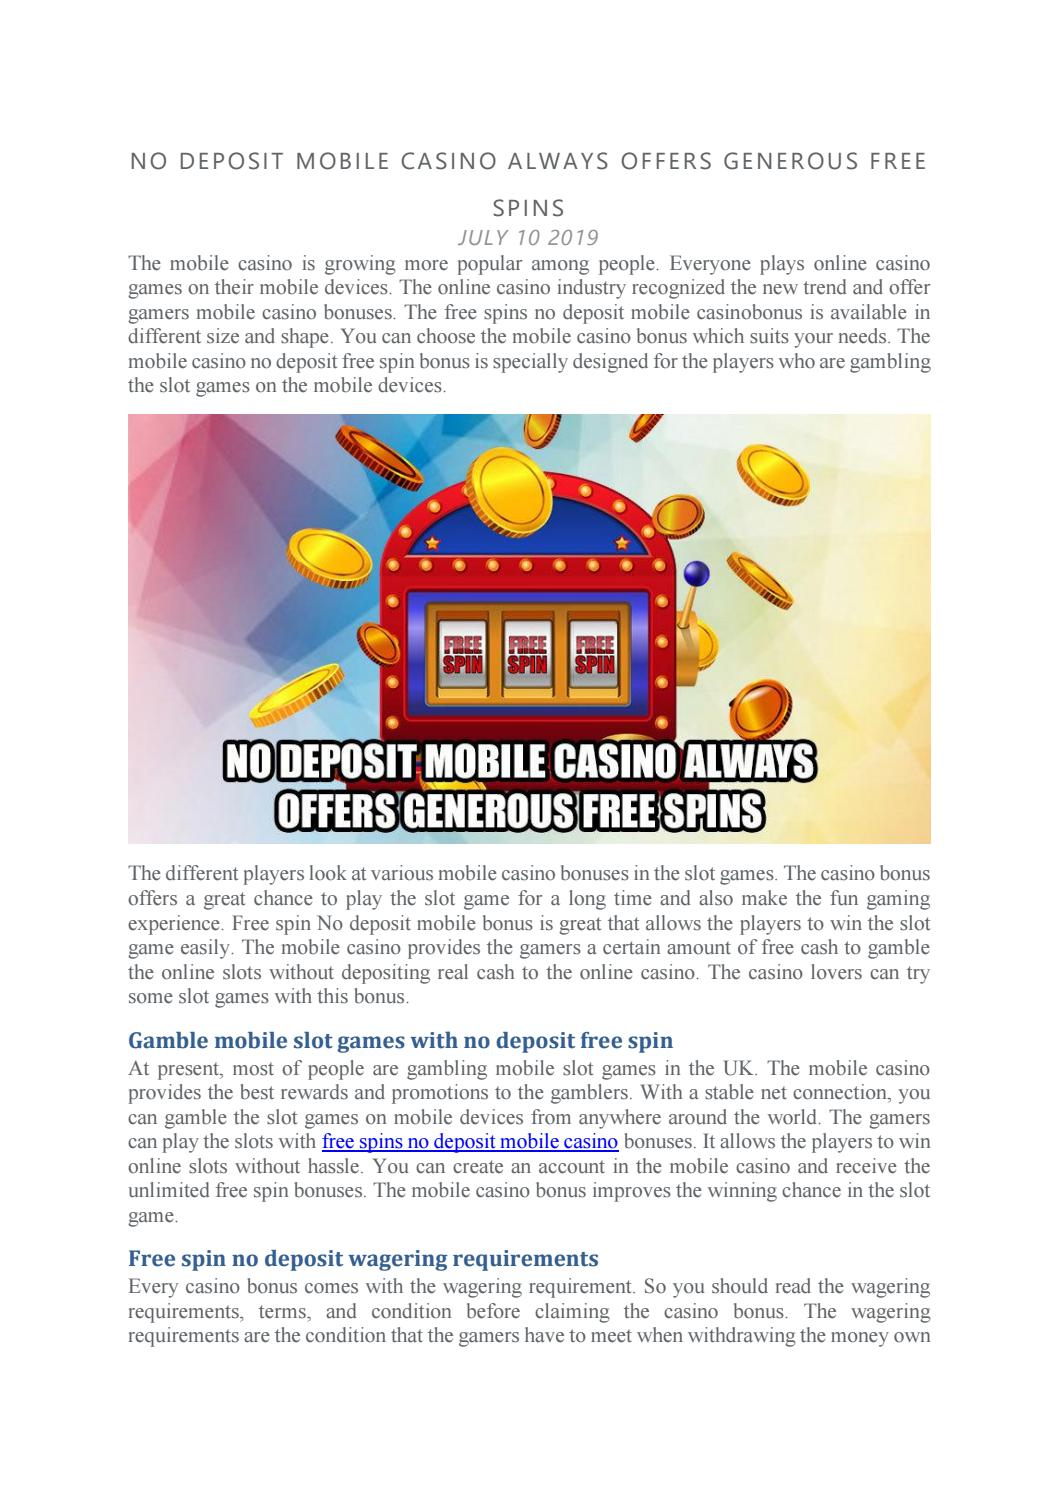 No Deposit Mobile Casino Always Offers Generous Free Spins By